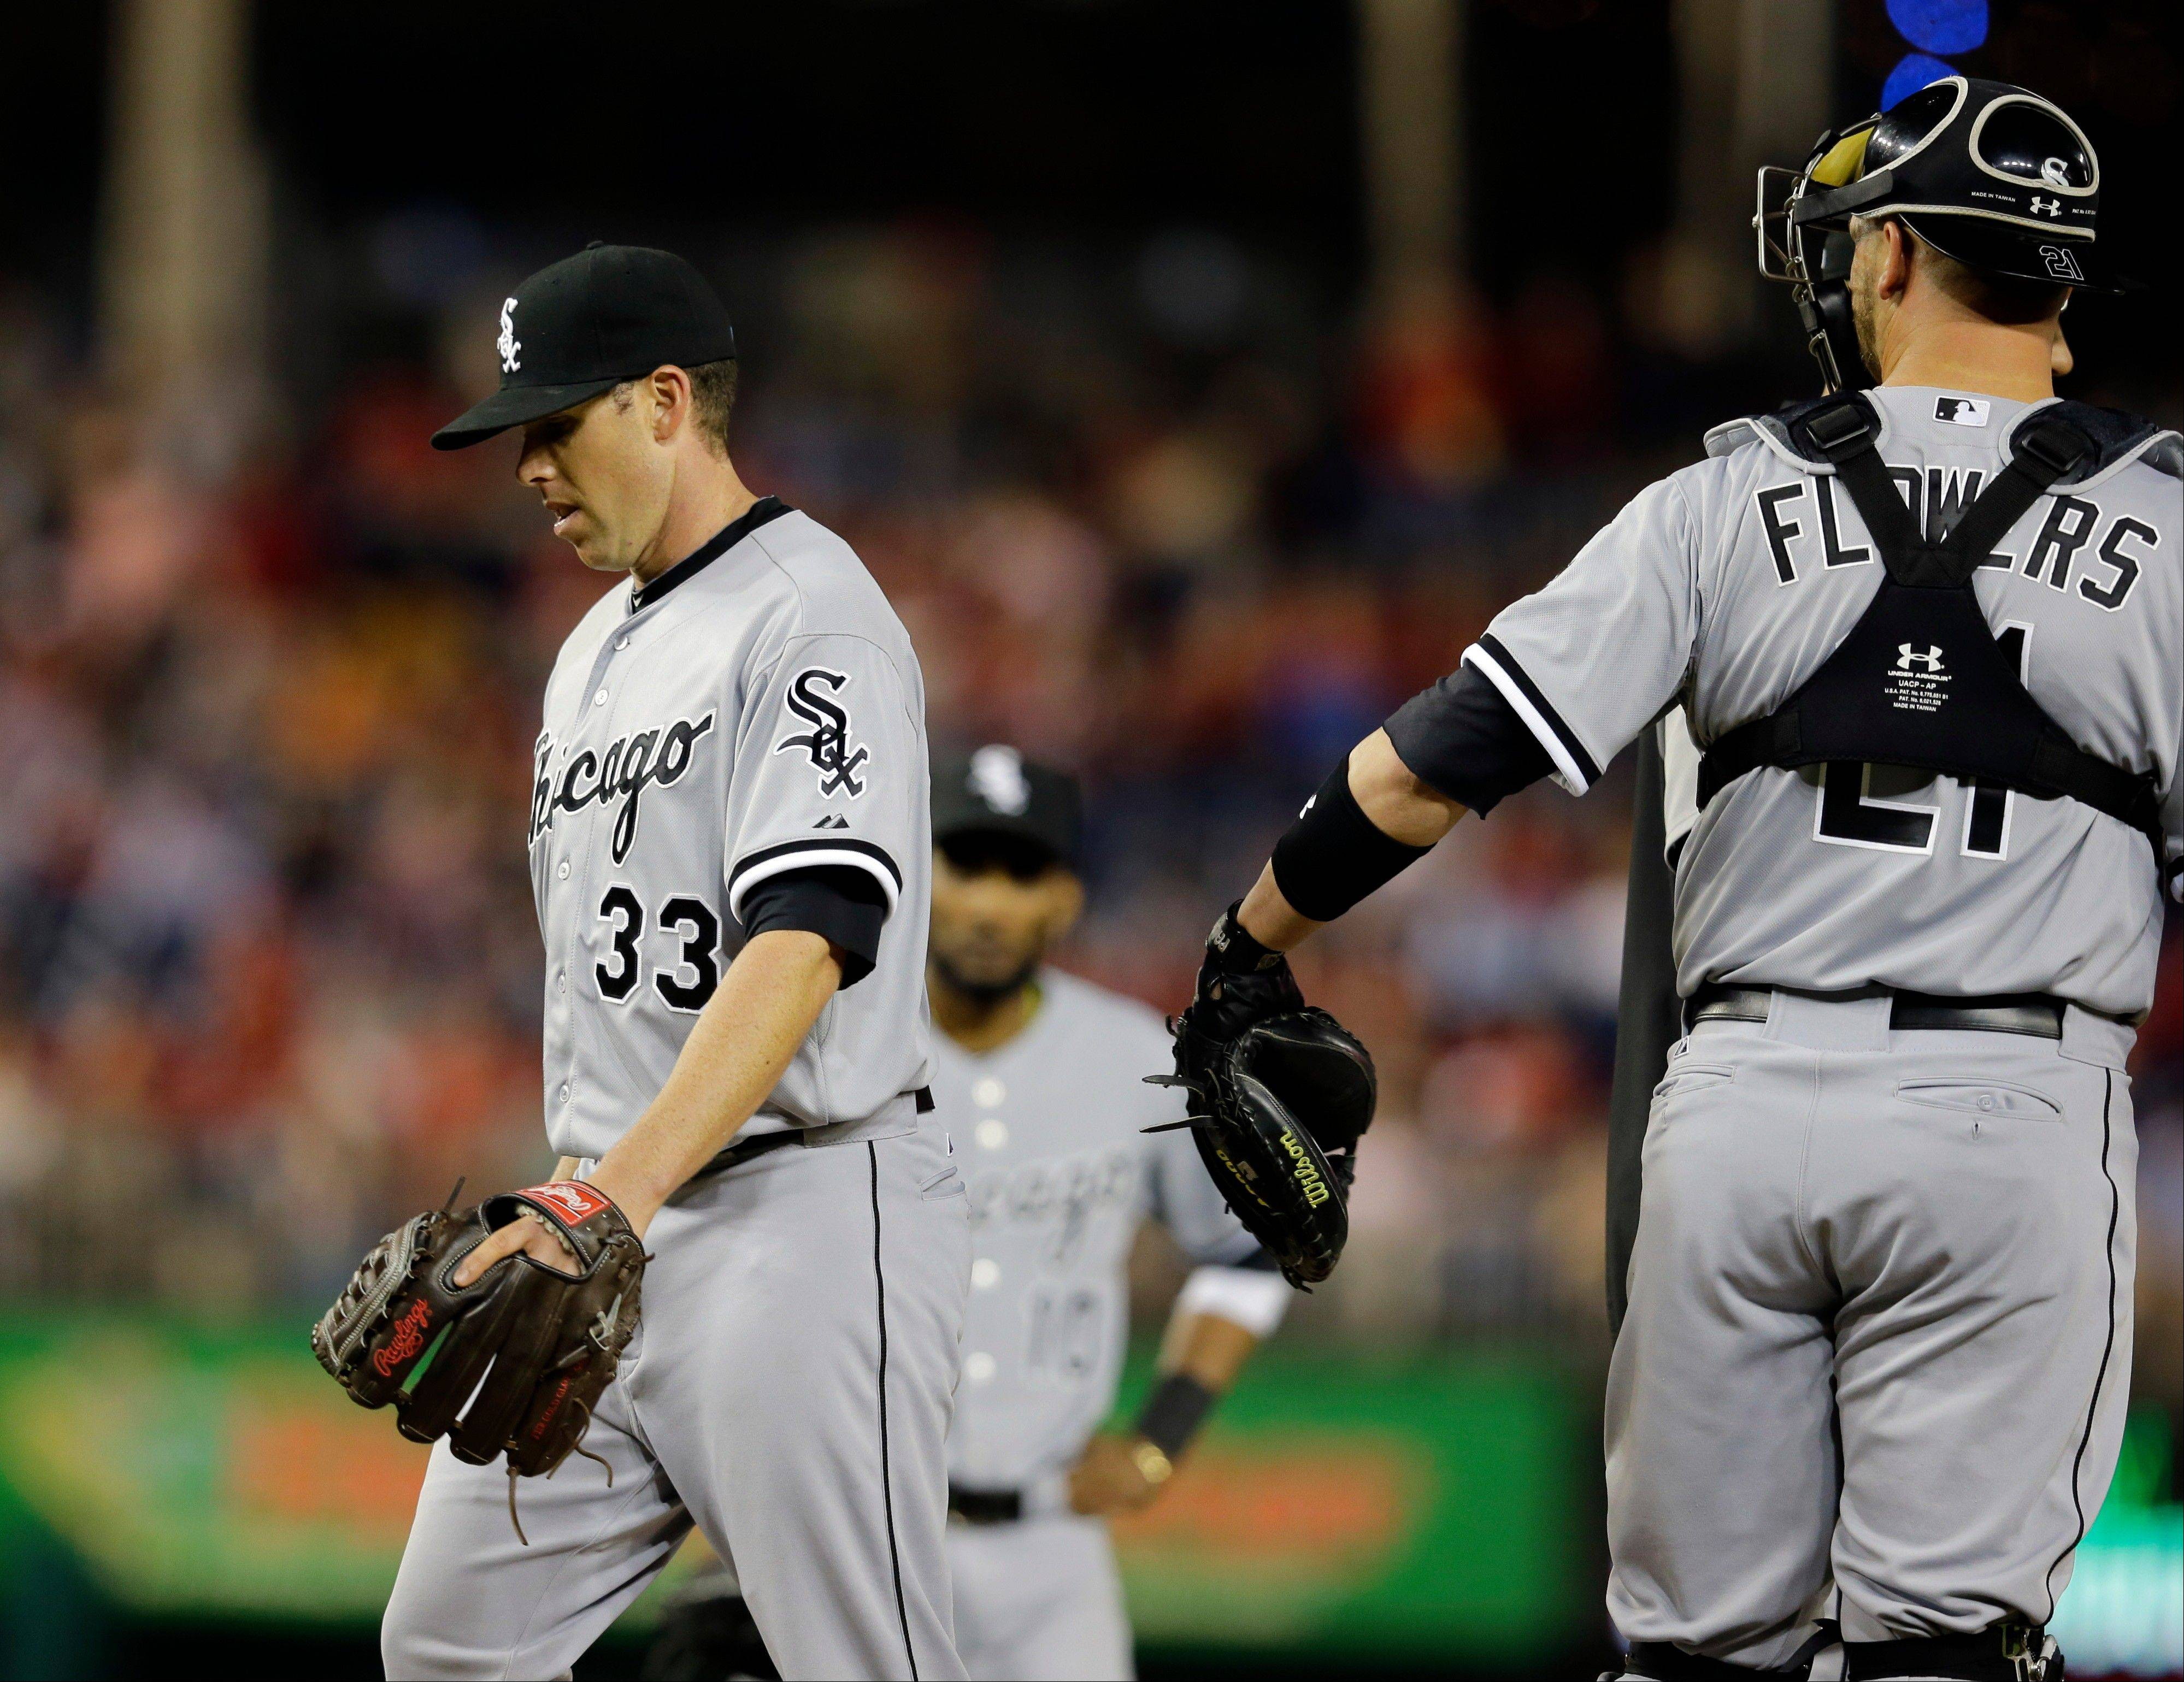 Chicago White Sox starting pitcher Dylan Axelrod (33) walks to the dugout past catcher Tyler Flowers as he is relieved during the fourth inning of an interleague baseball game against the Washington Nationals at Nationals Park, Thursday, April 11, 2013, in Washington. (AP Photo/Alex Brandon)